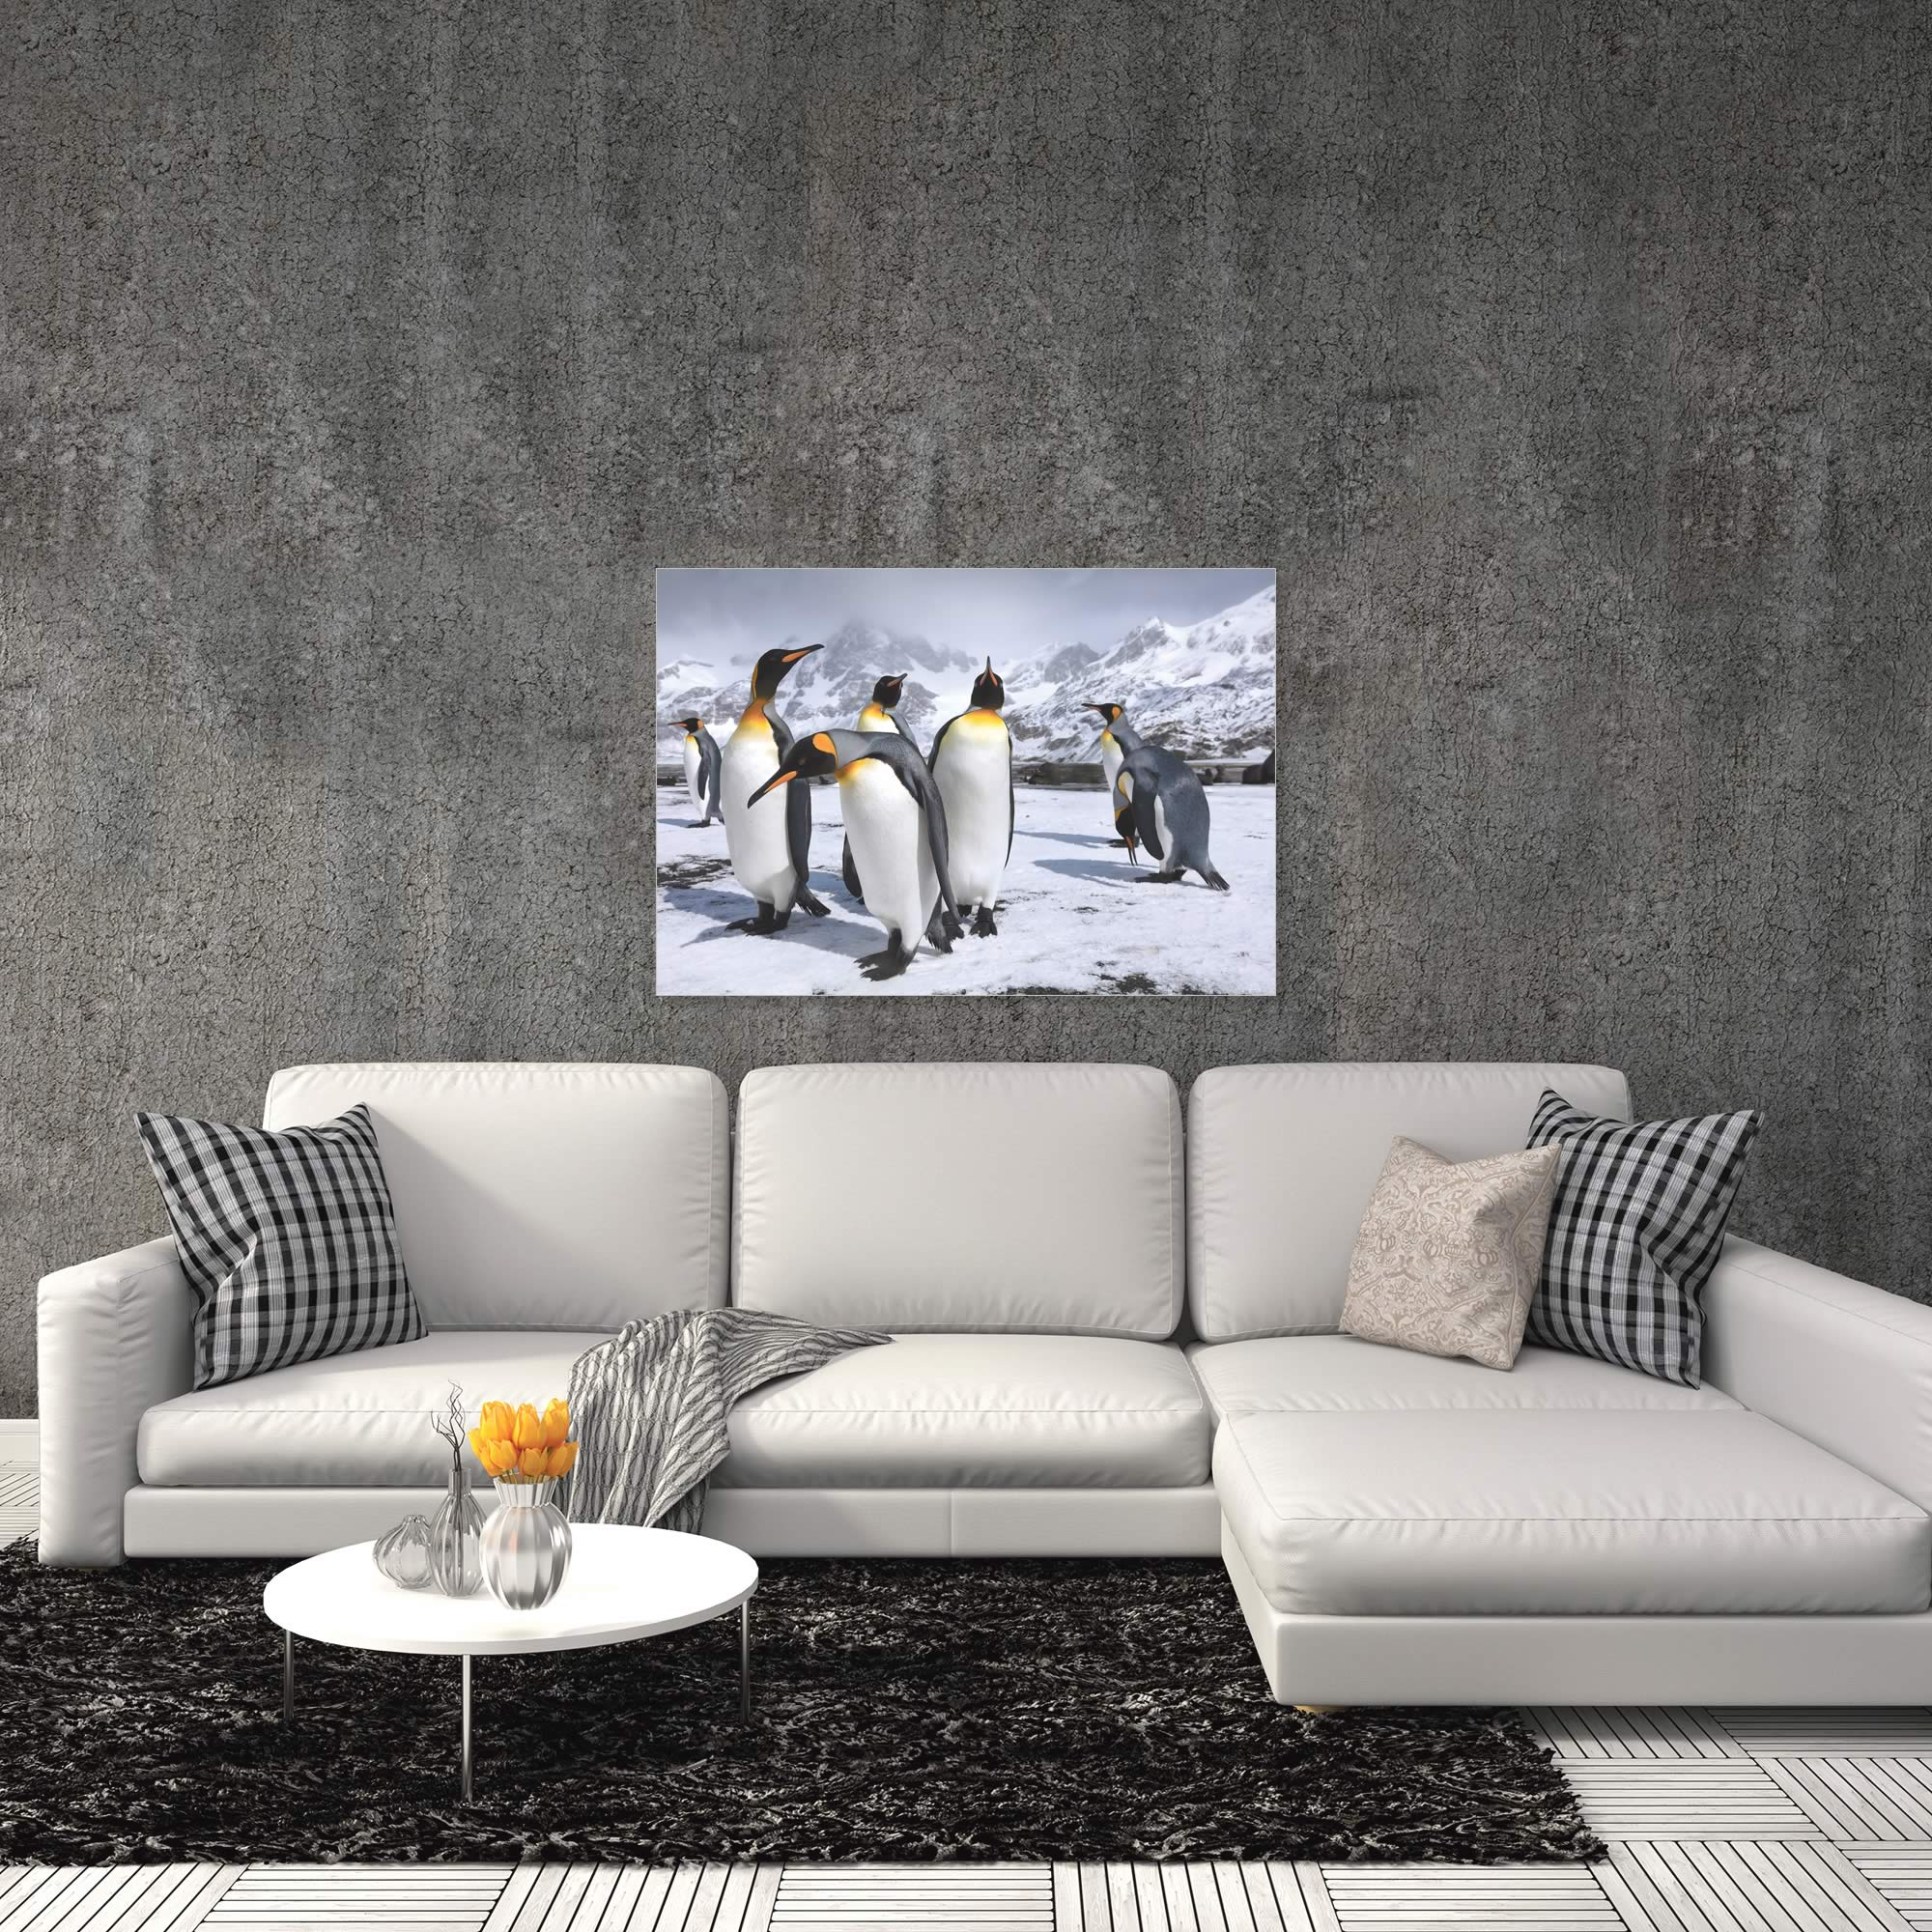 King Penguins at the Bay by Steph Oli - Penguin Wall Art on Metal or Acrylic - Alternate View 1